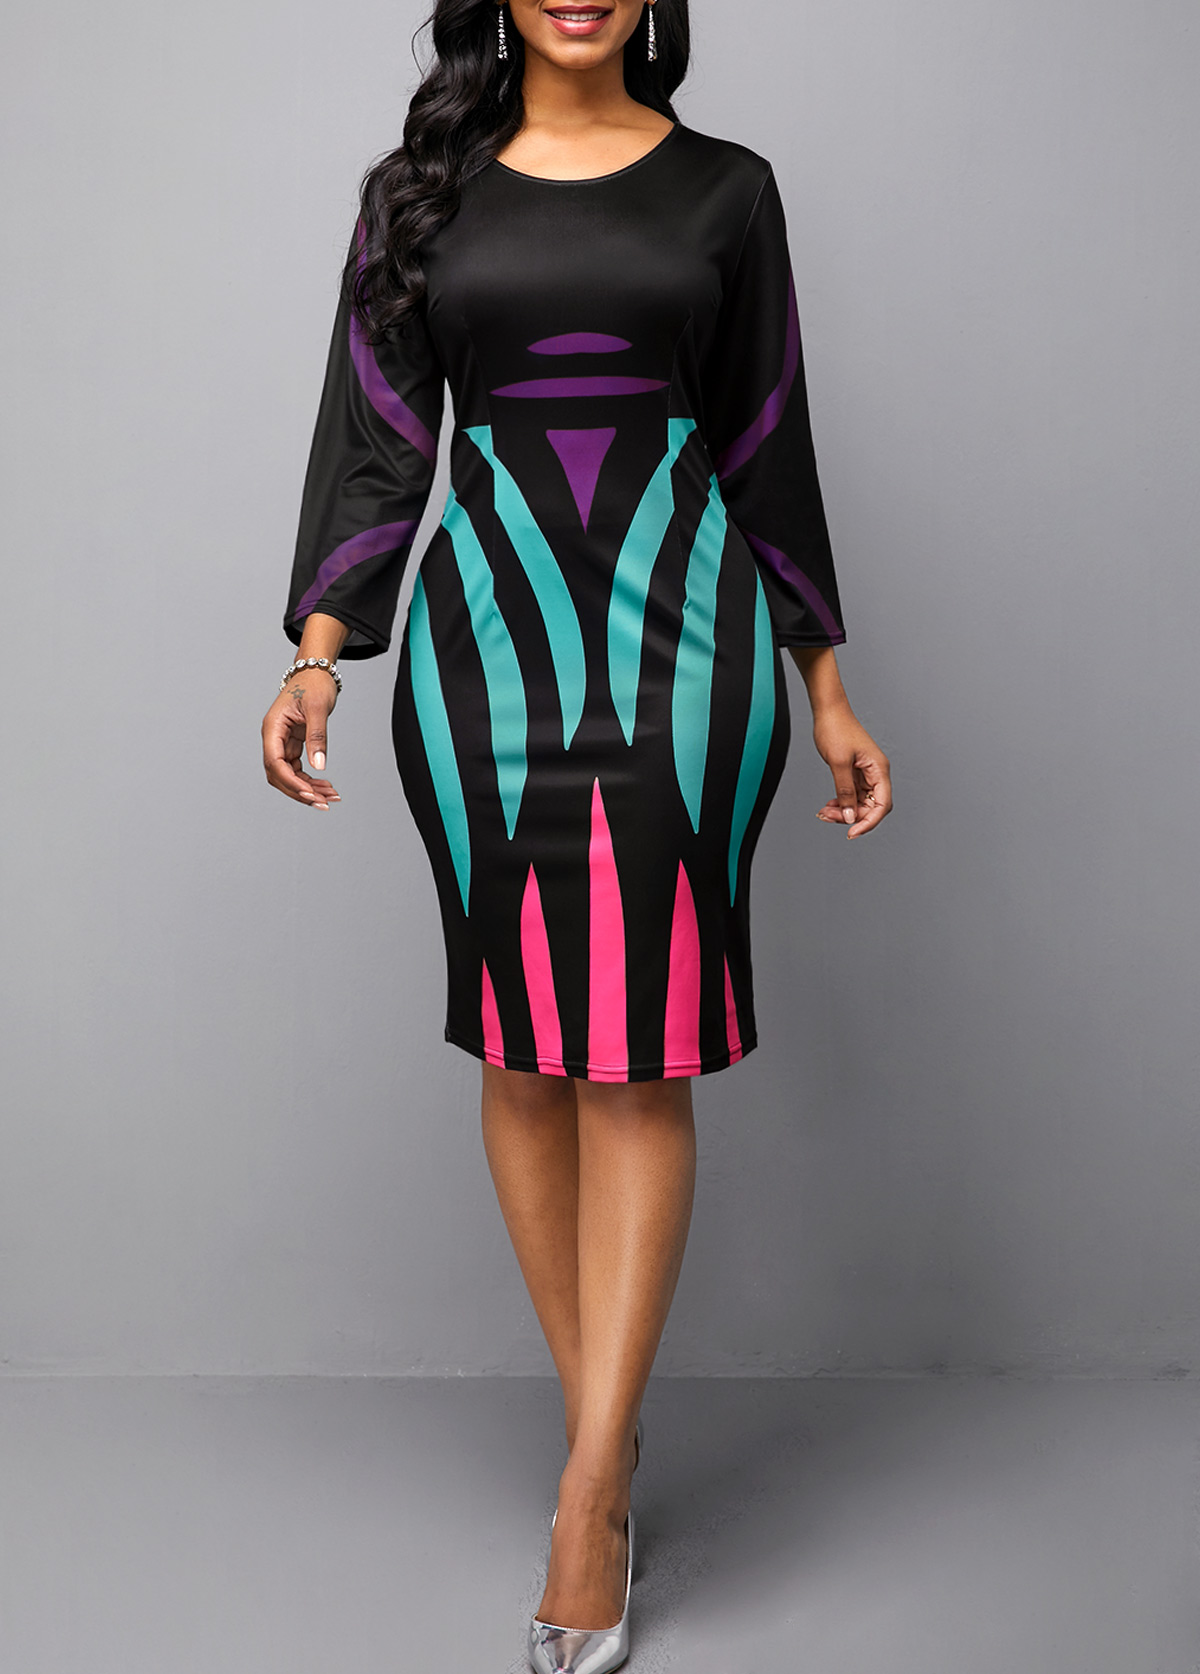 ROTITA Stripe Print V Neck Three Quarter Sleeve Sheath Dress